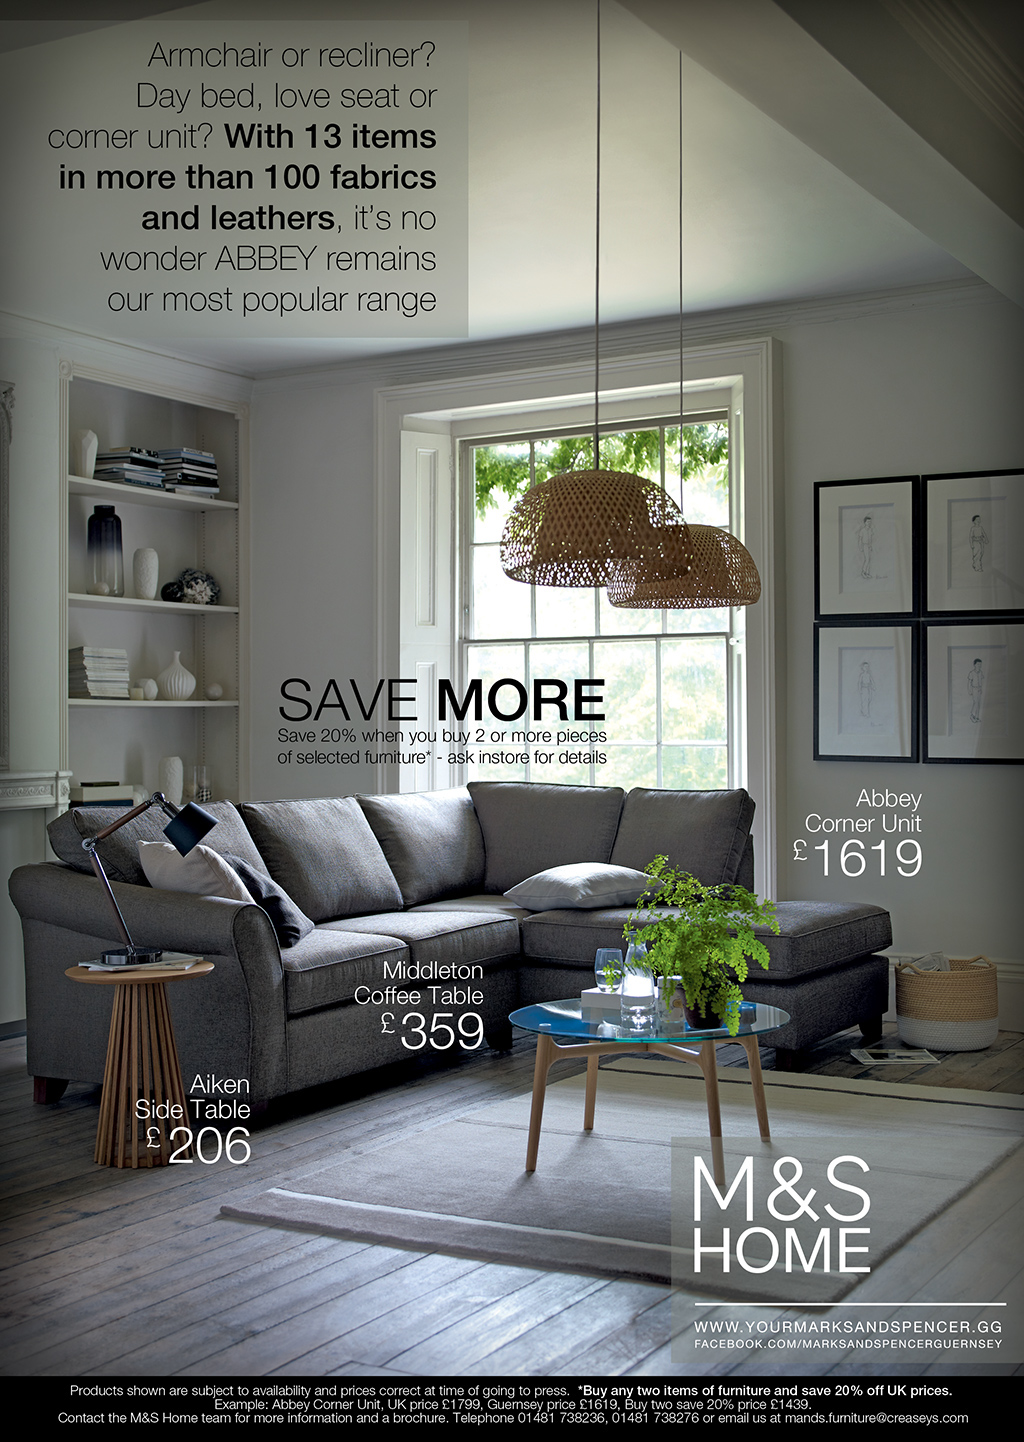 GBG Magazine Press Advert Promoting Buy Two Save 20 Offer February 2015